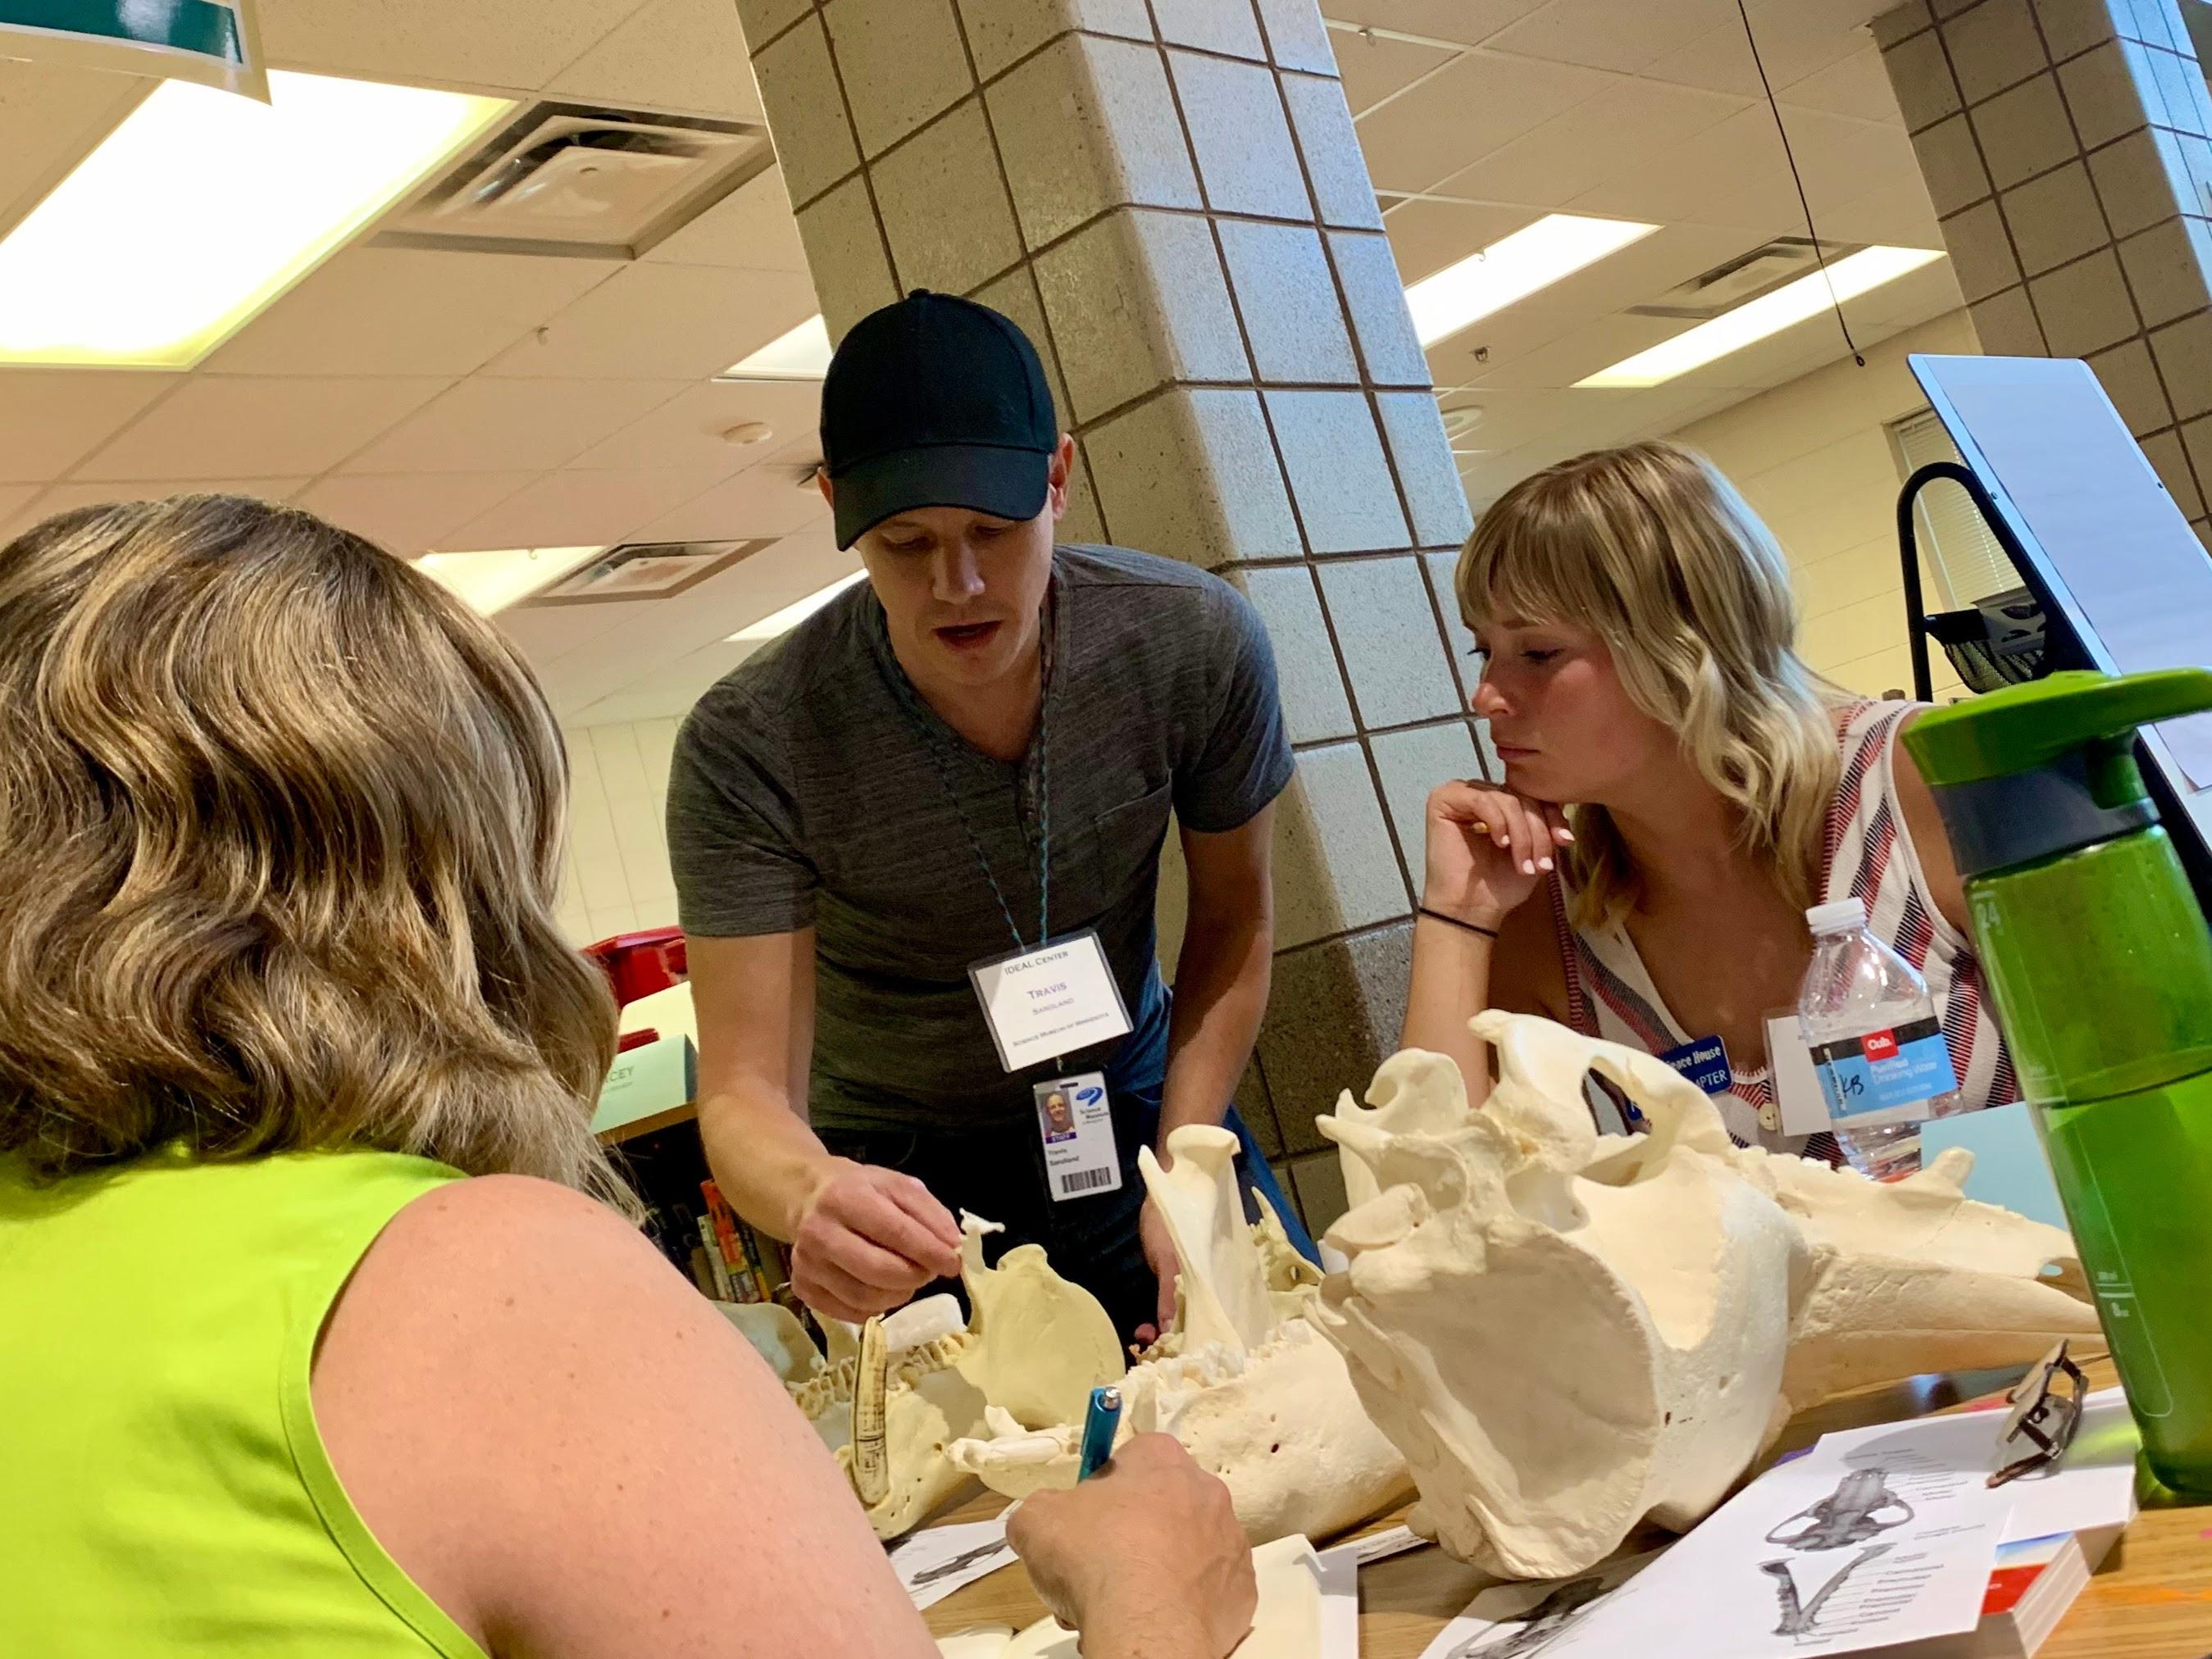 An IDEAL Center instructor leading a discussion at a table featuring bones with two other people.